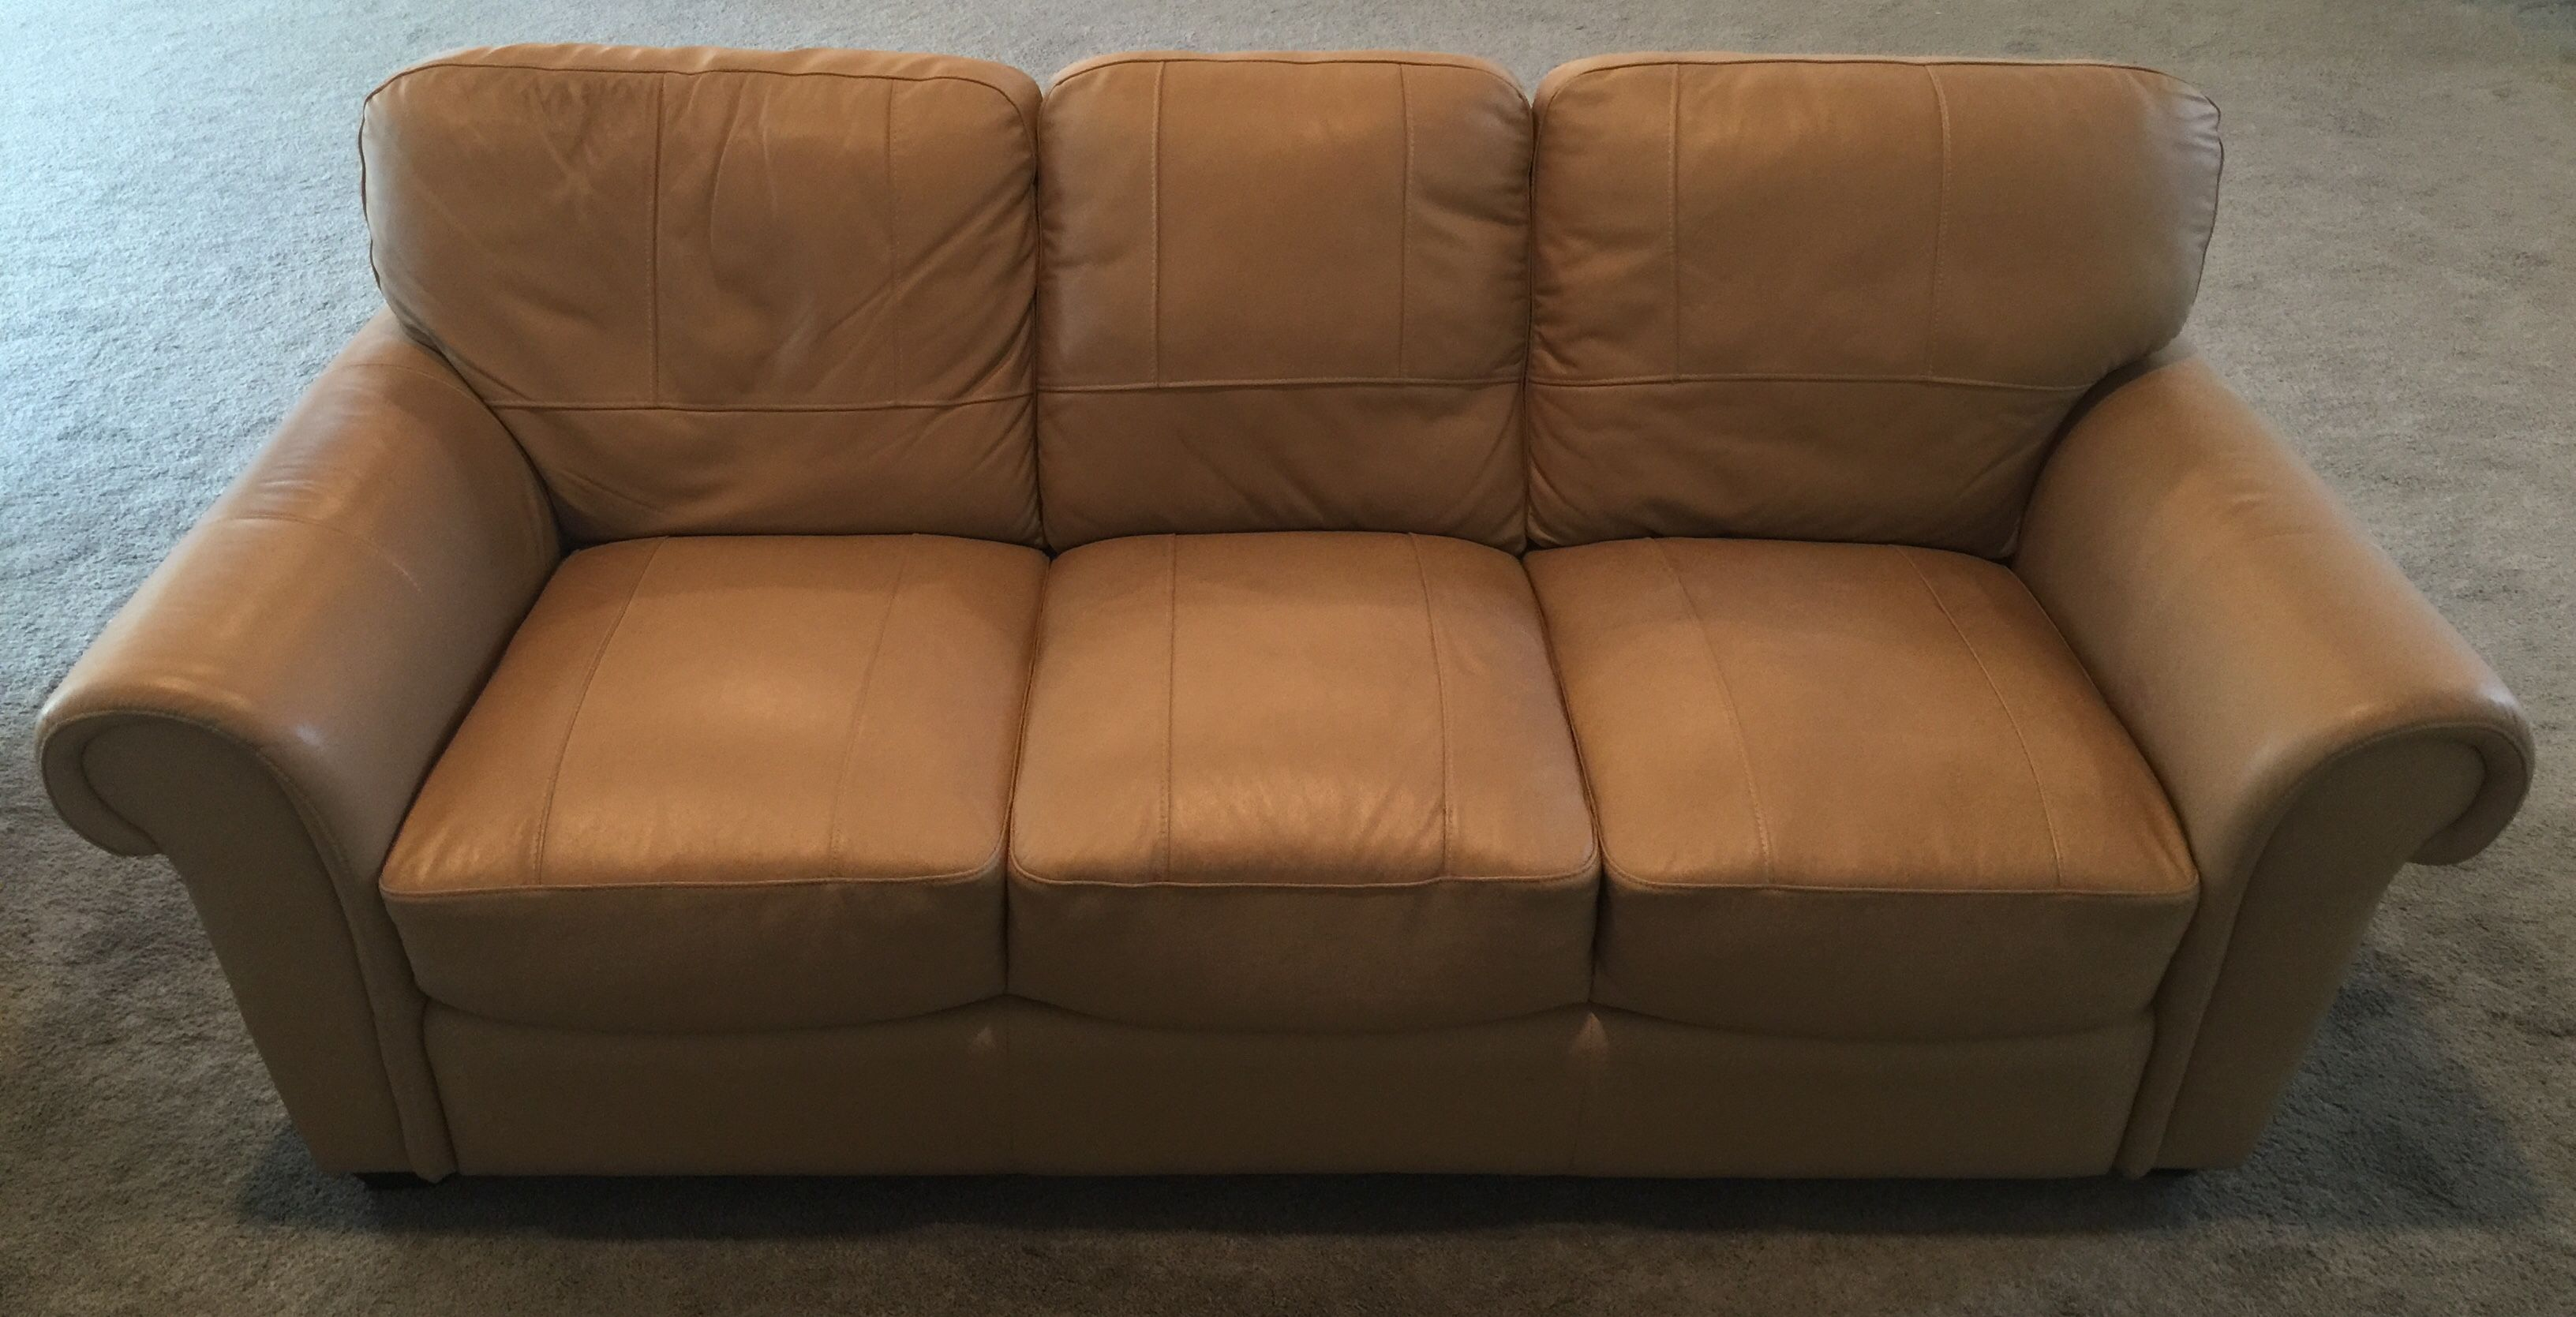 - SANDY COLORED LEATHER SOFA FROM JEROME'S. 36H X 84W X 34D